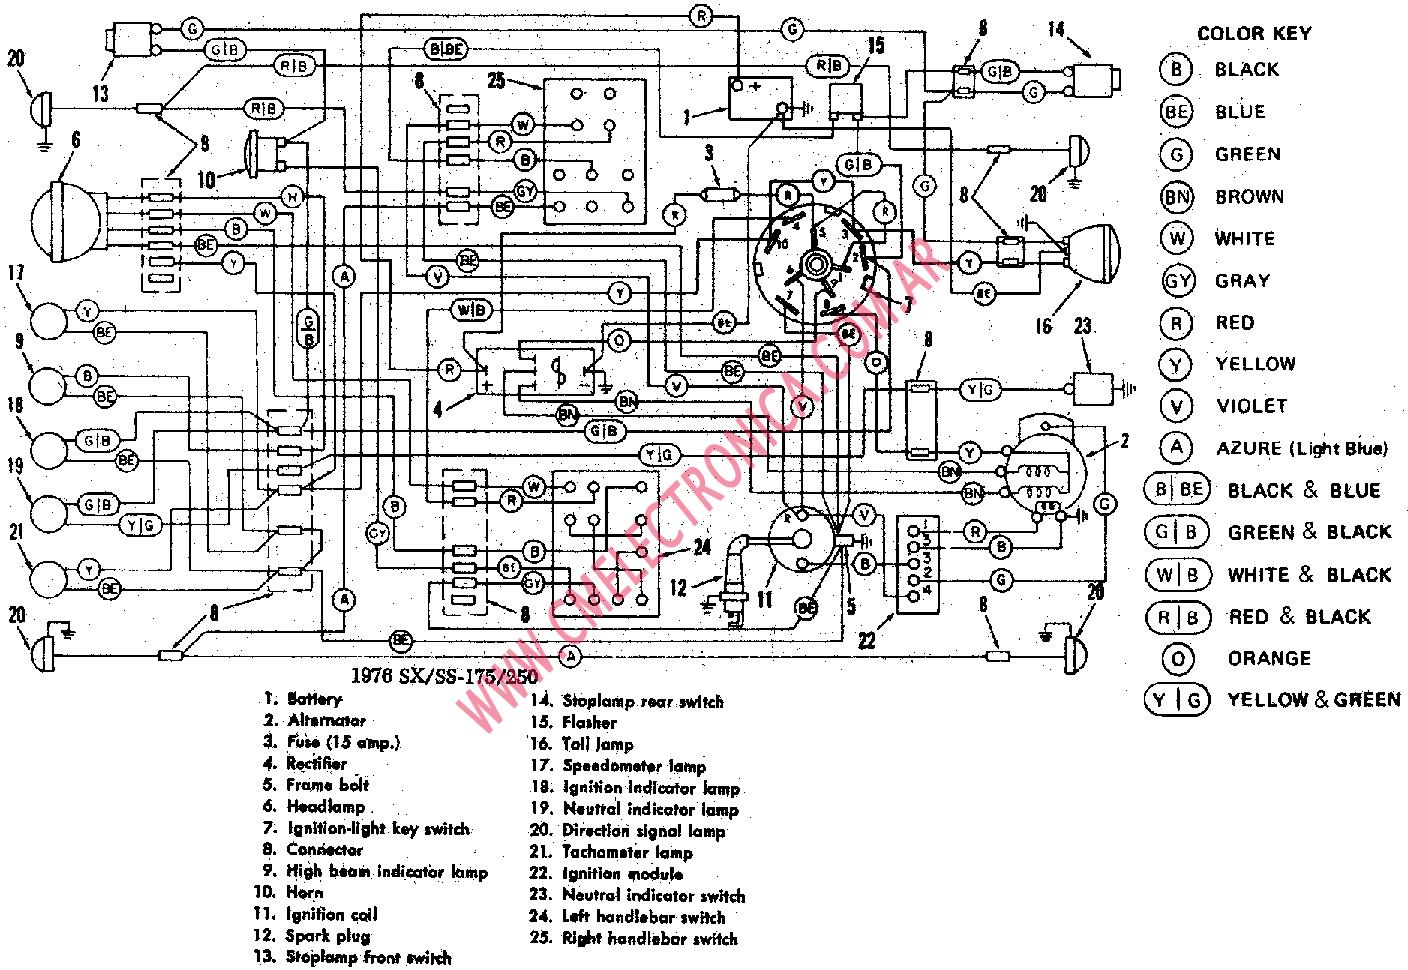 Harley davidson touring wiring diagram imageresizertool